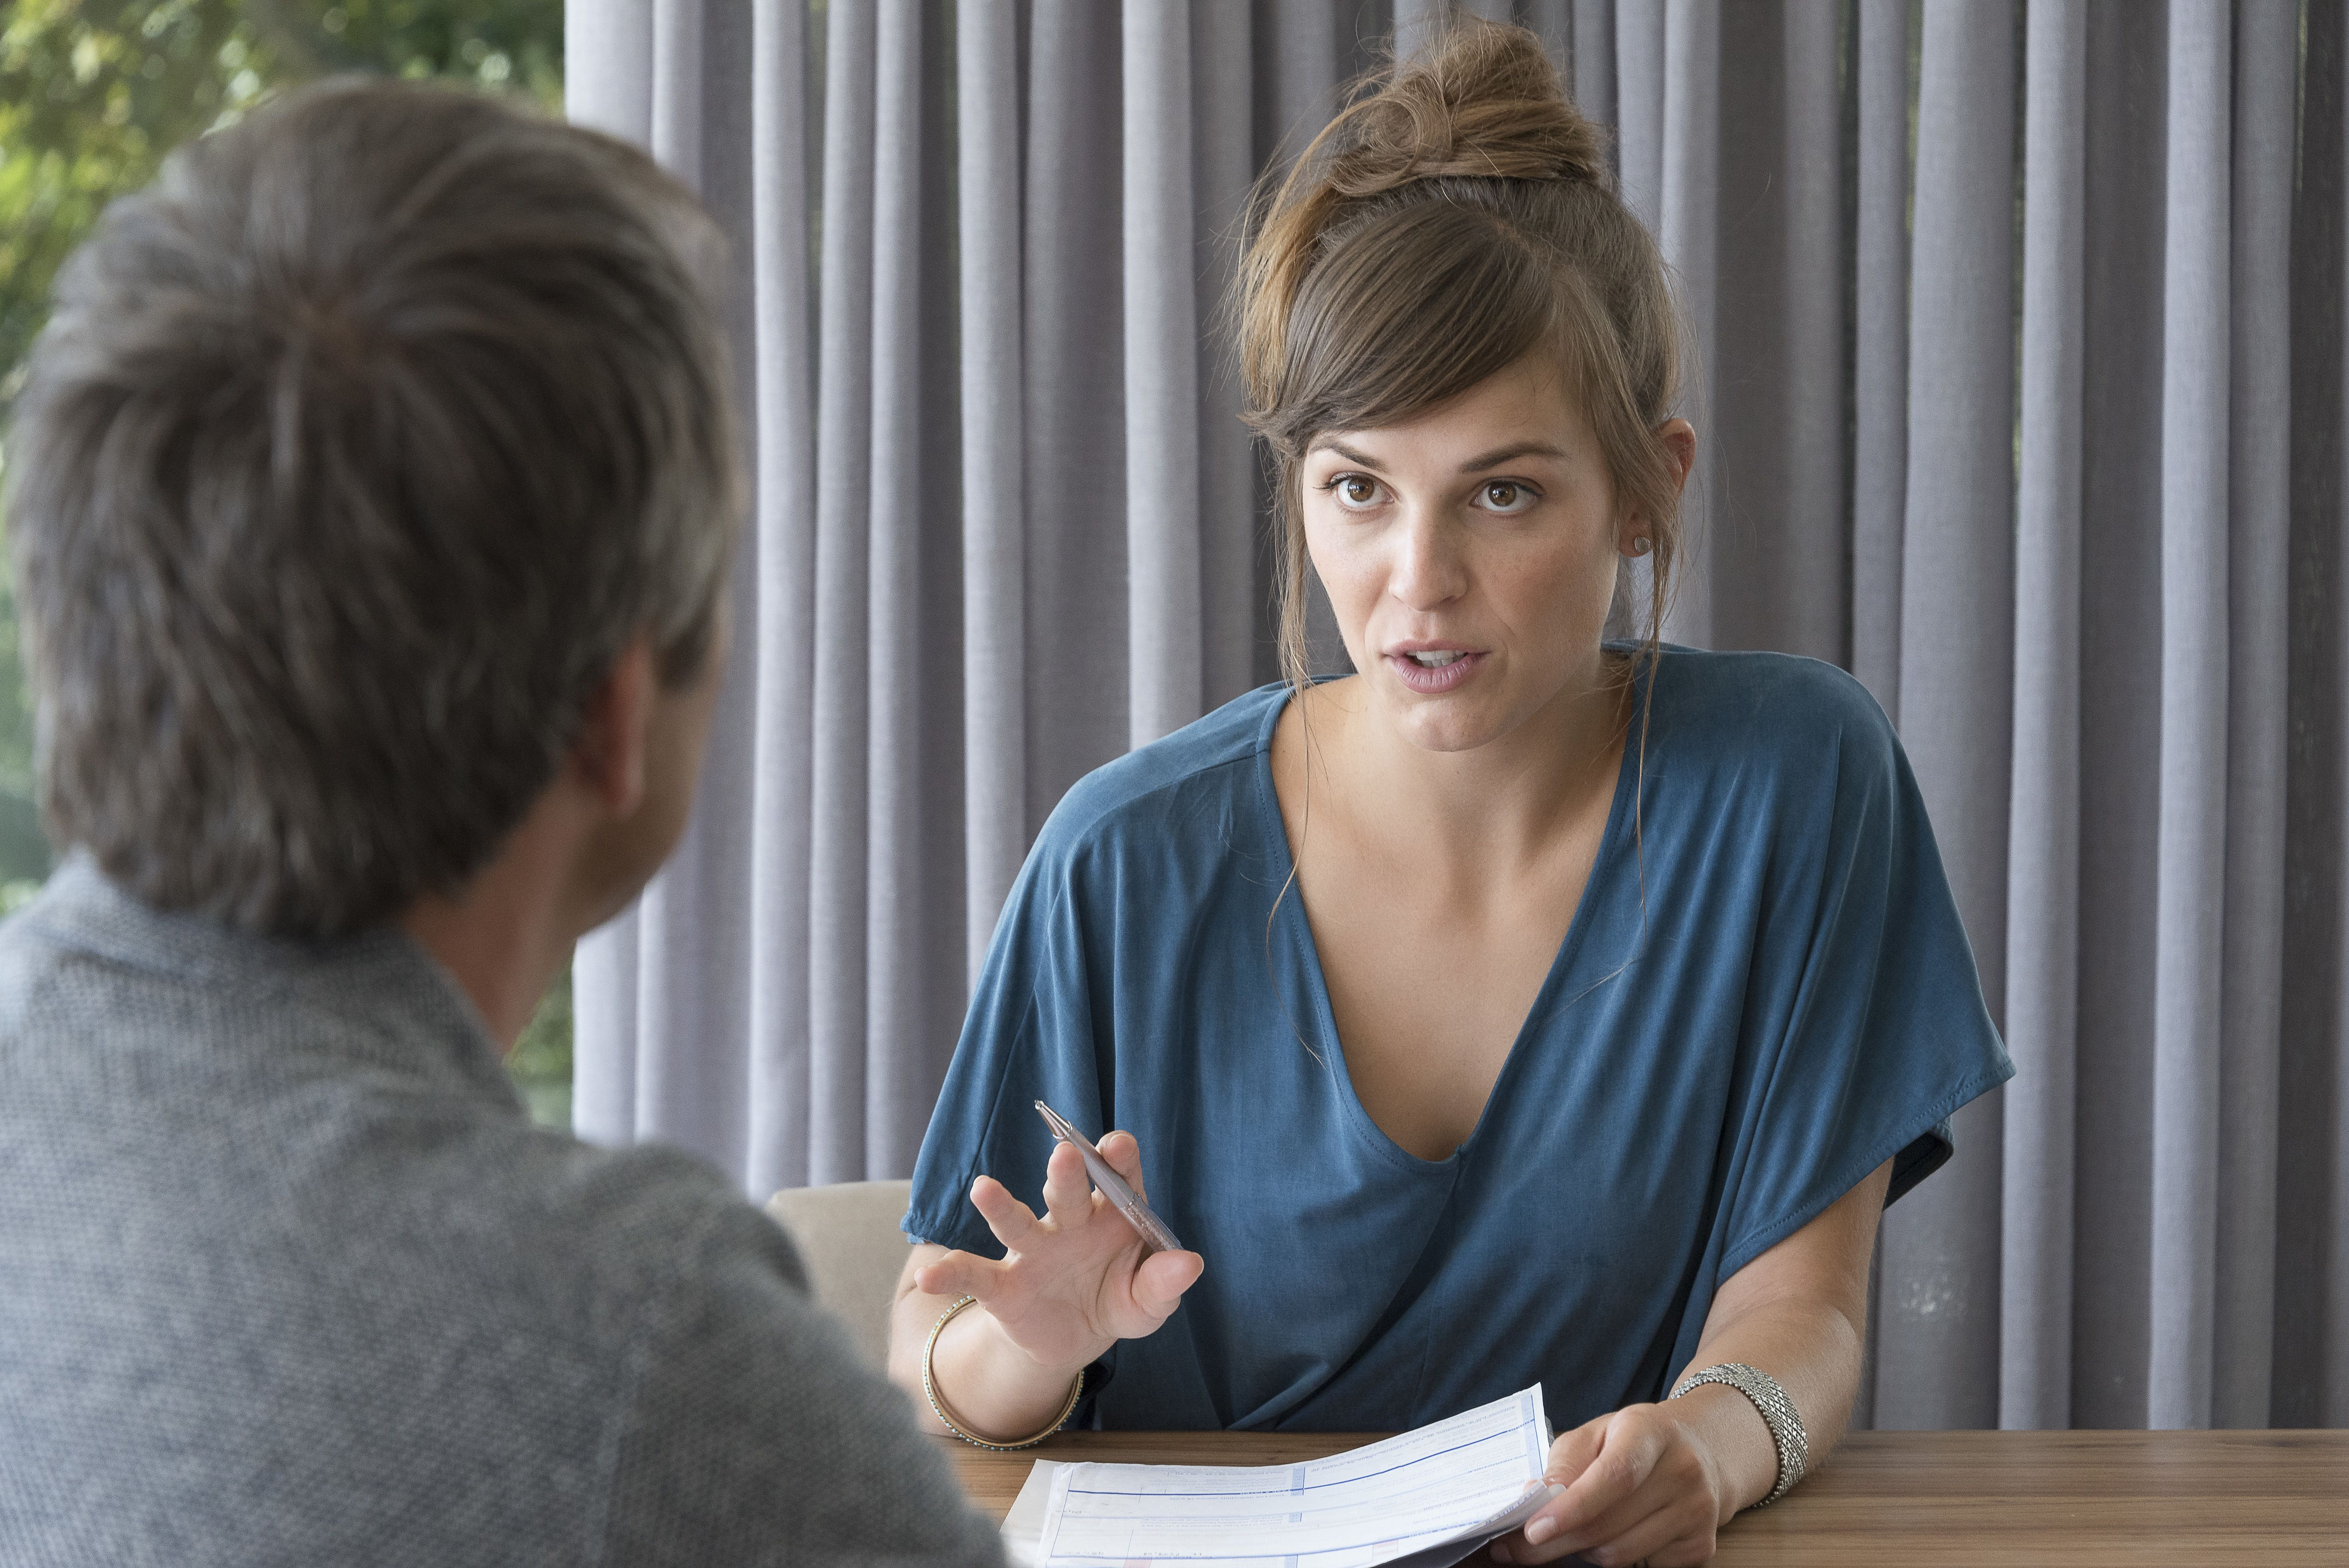 Want to Know the 10 Best Job Interview Questions Recruiters Can Ask?